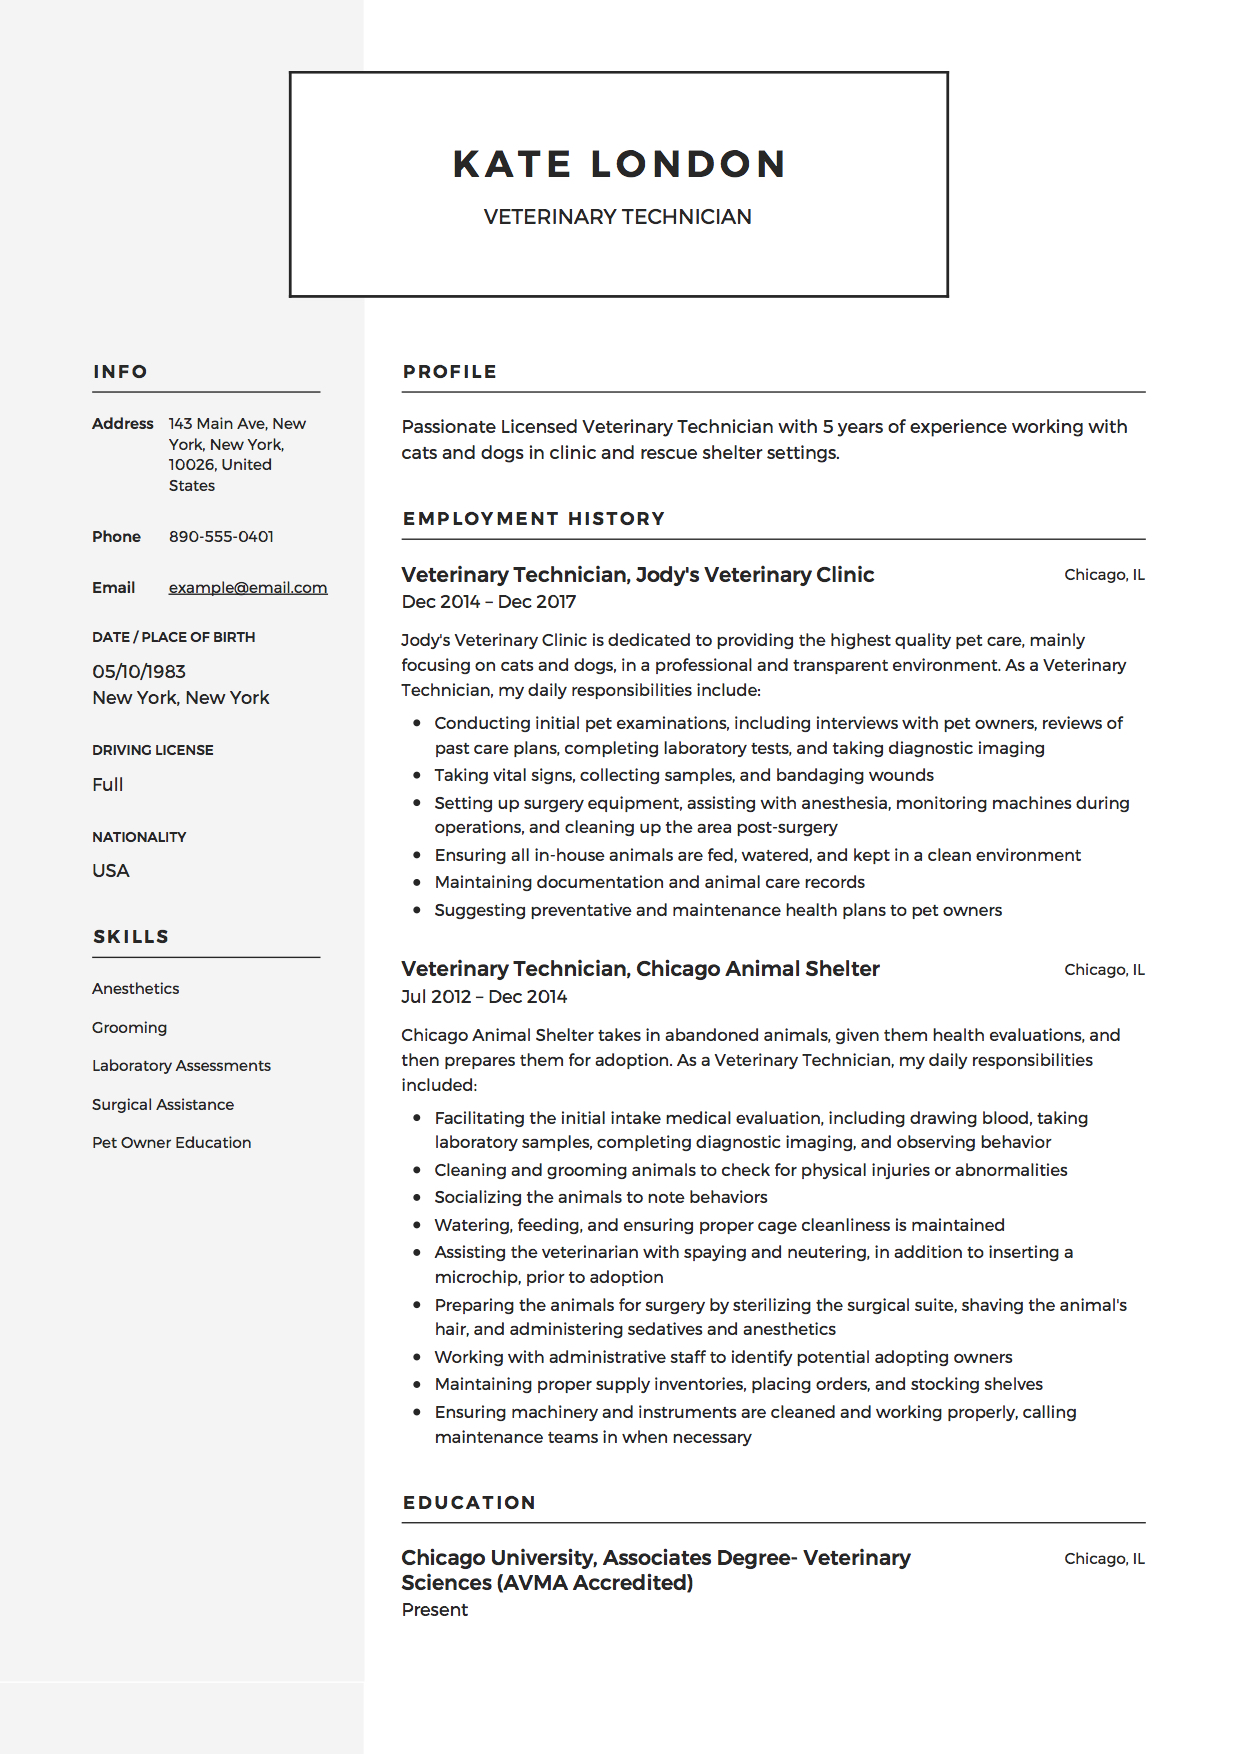 12 Veterinary Technician Resume